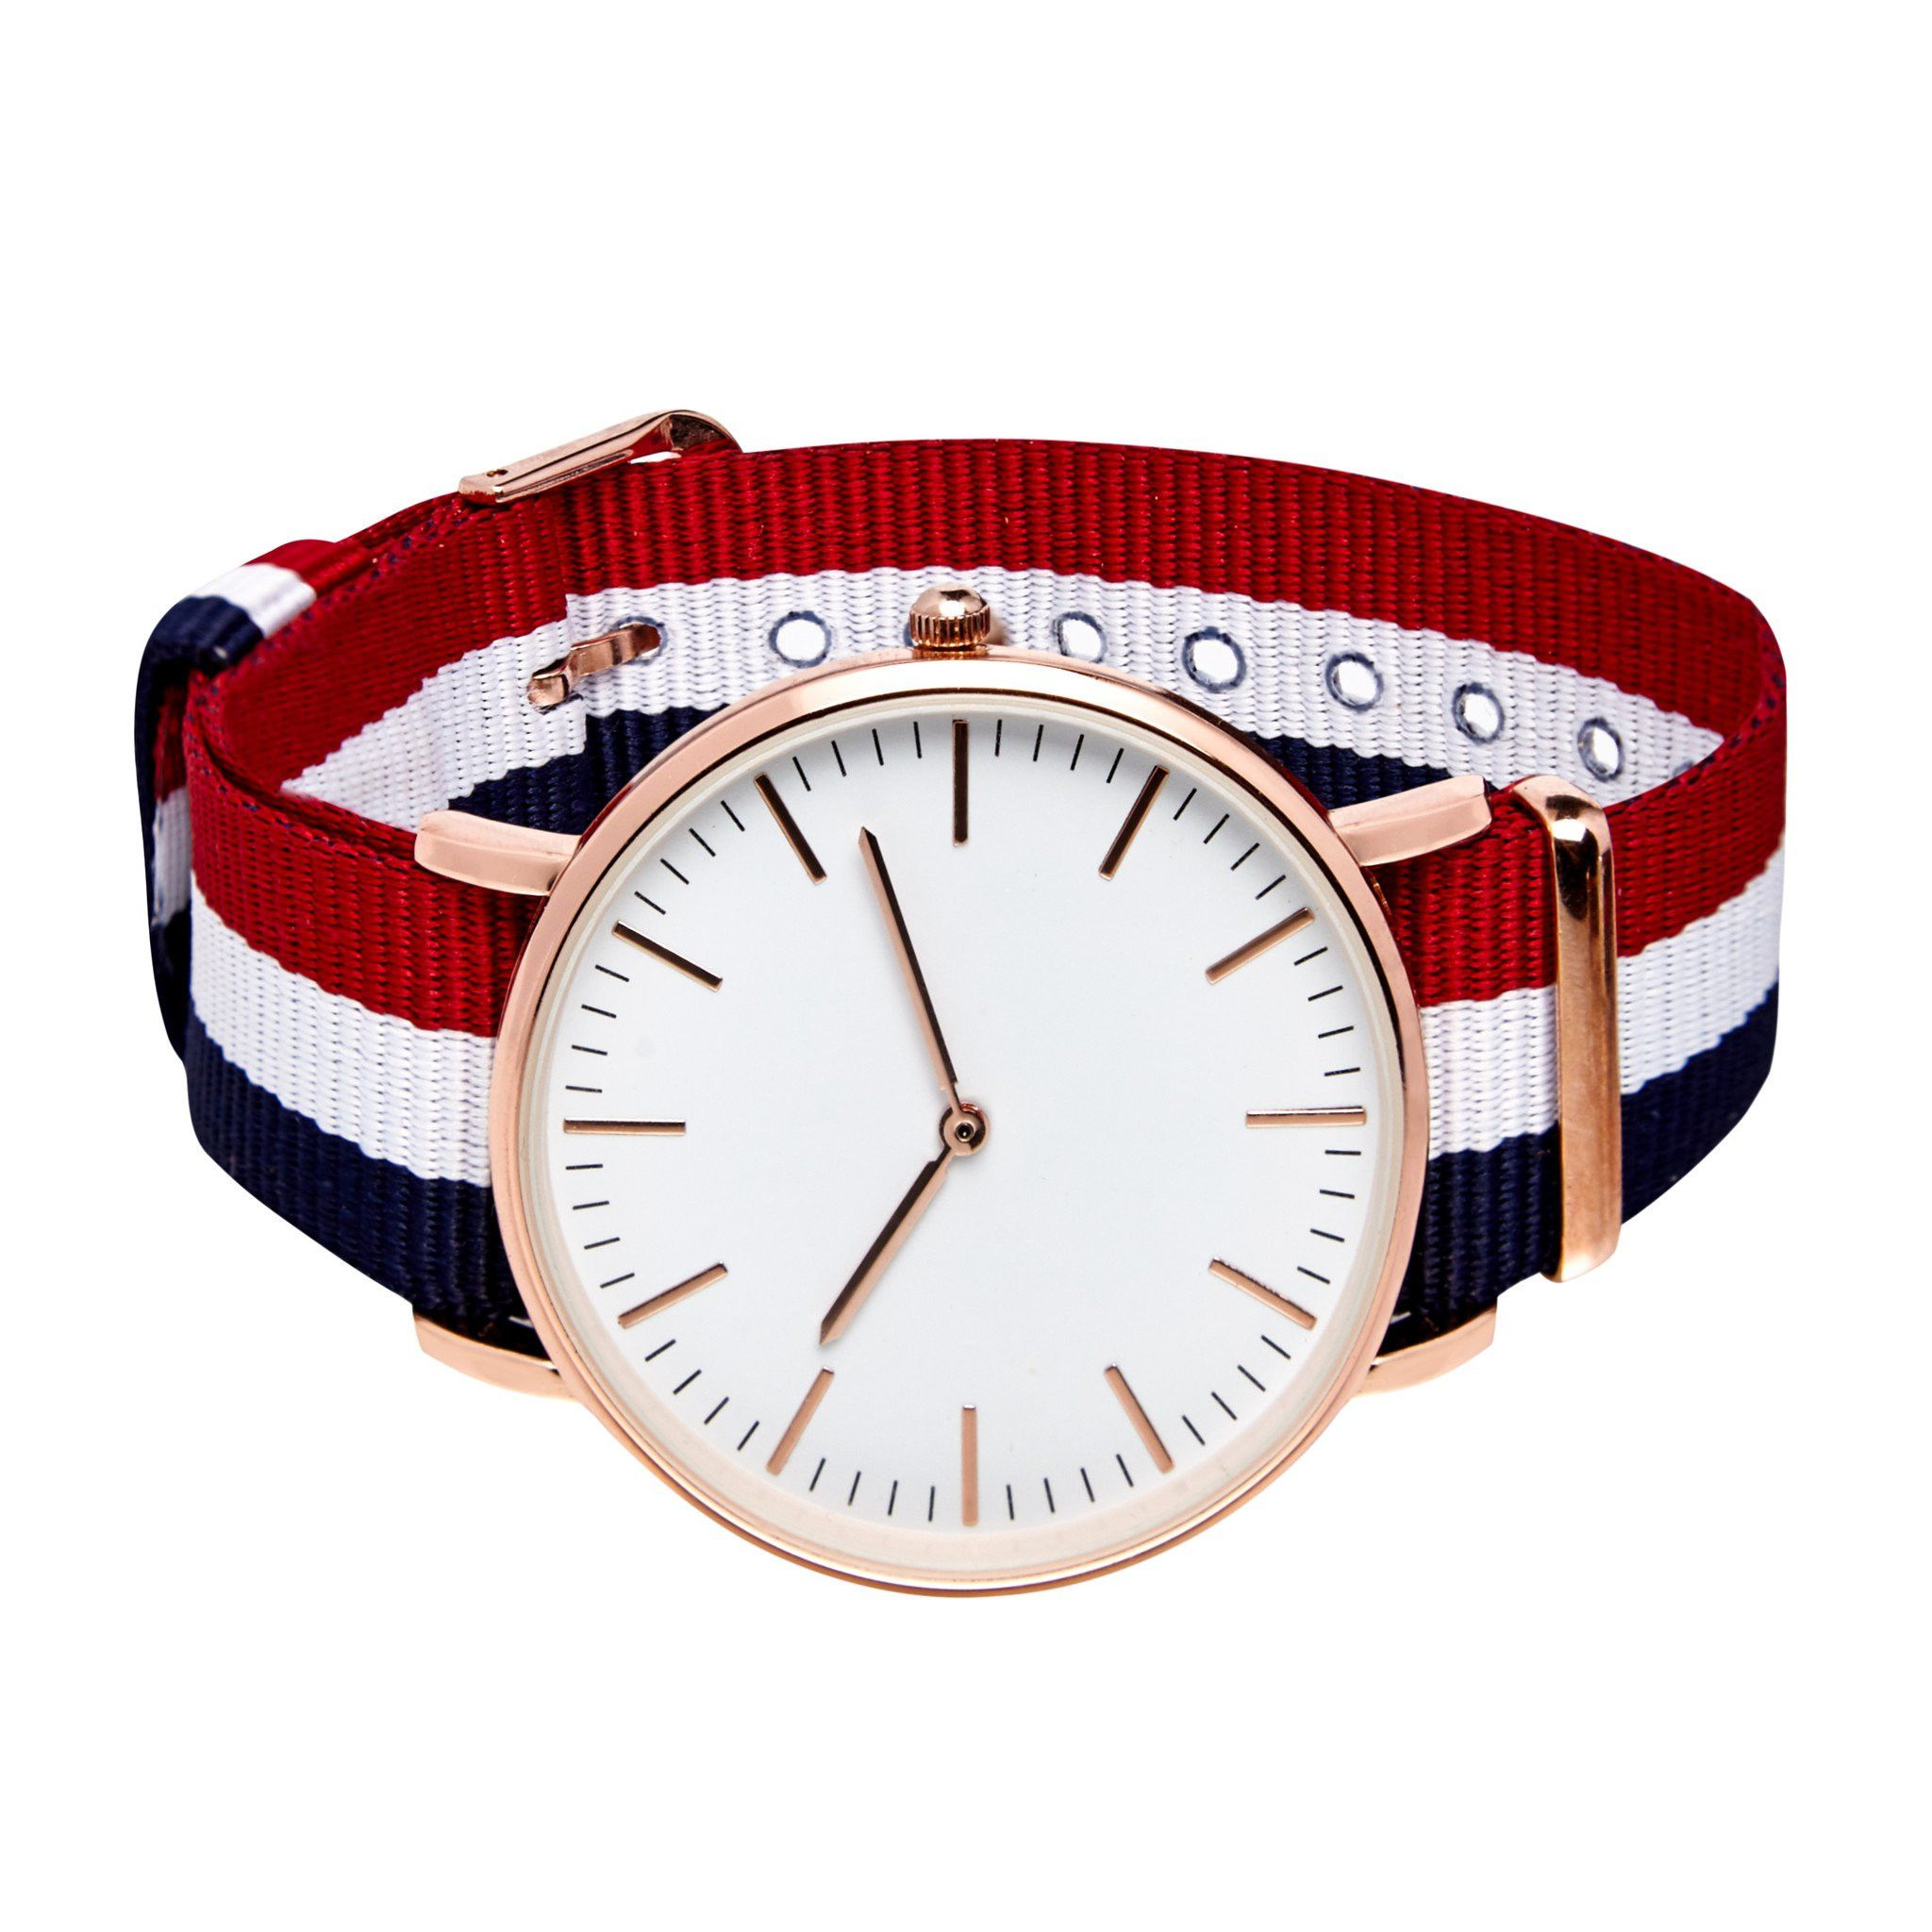 threads in and watches made fs usa rolls watch style transport waxed travel protect canvas your